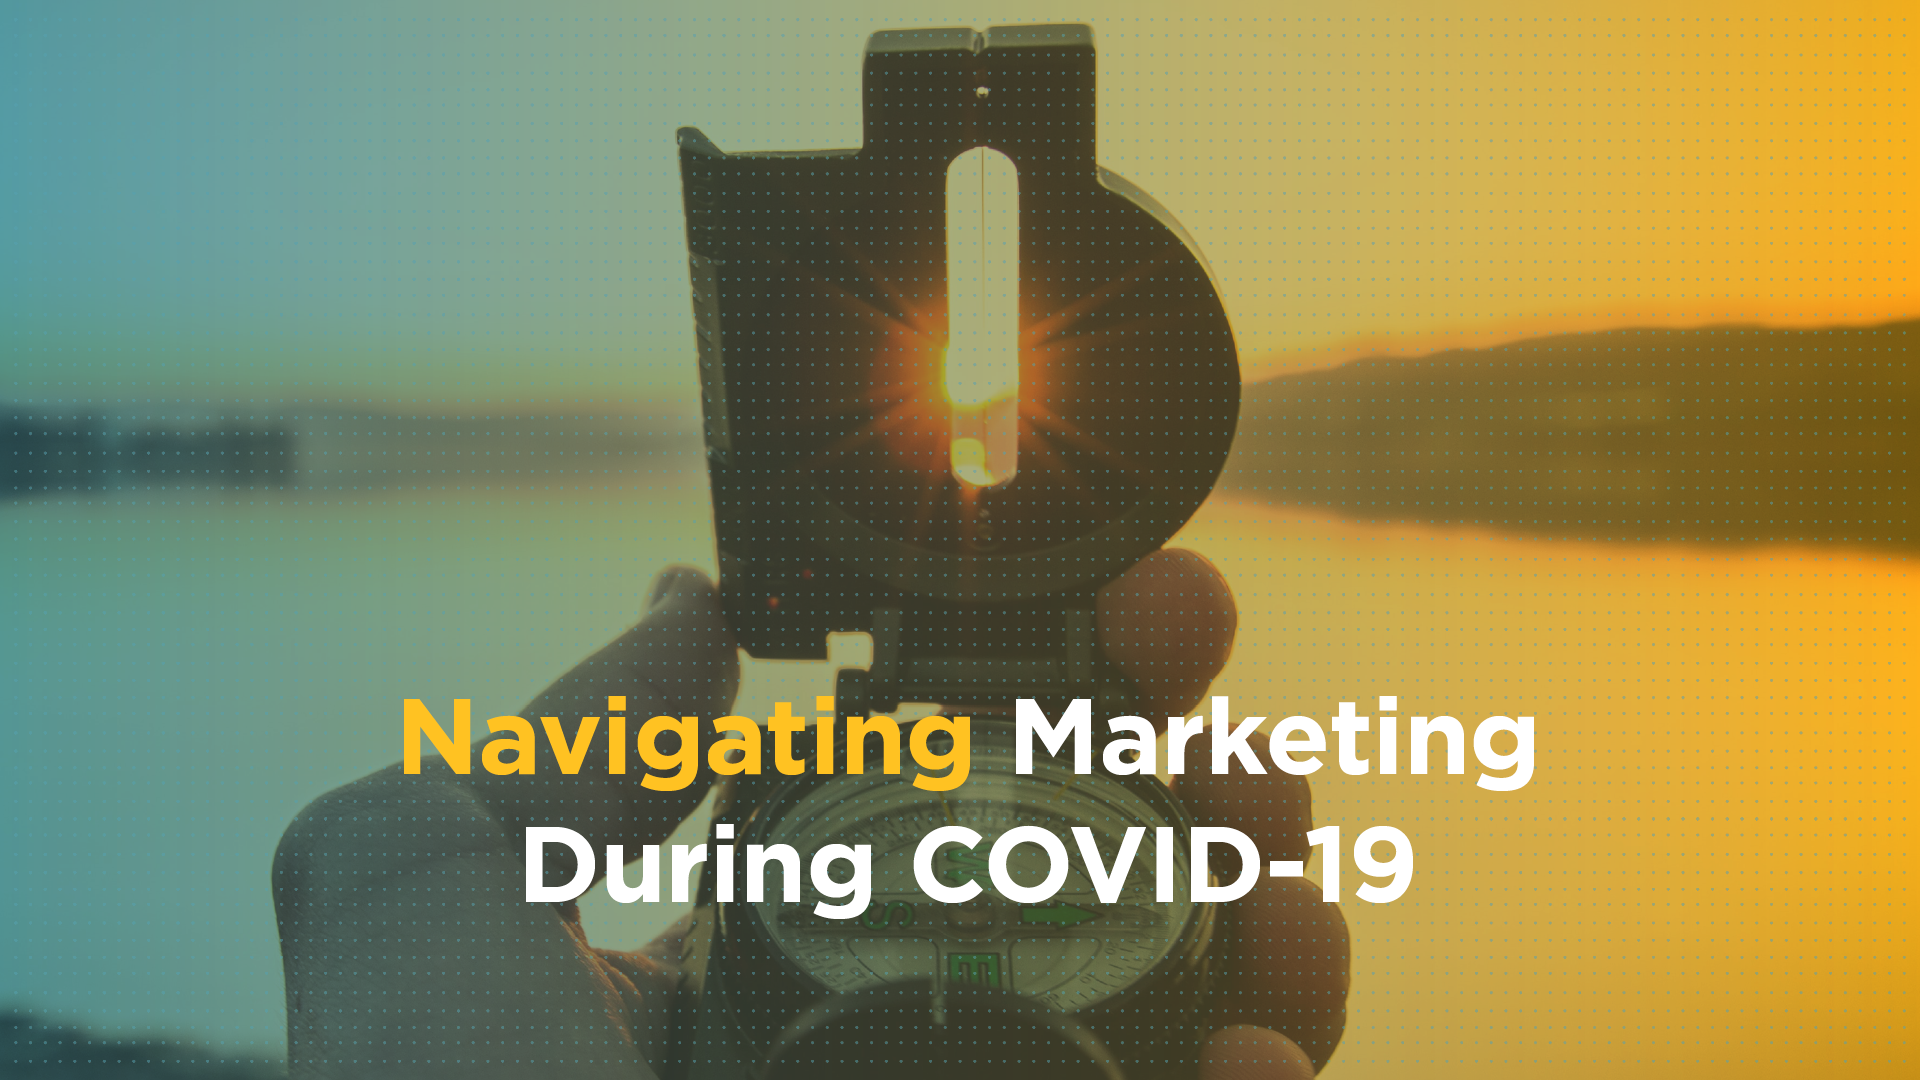 Navigating Marketing During COVID-19 Featured Image